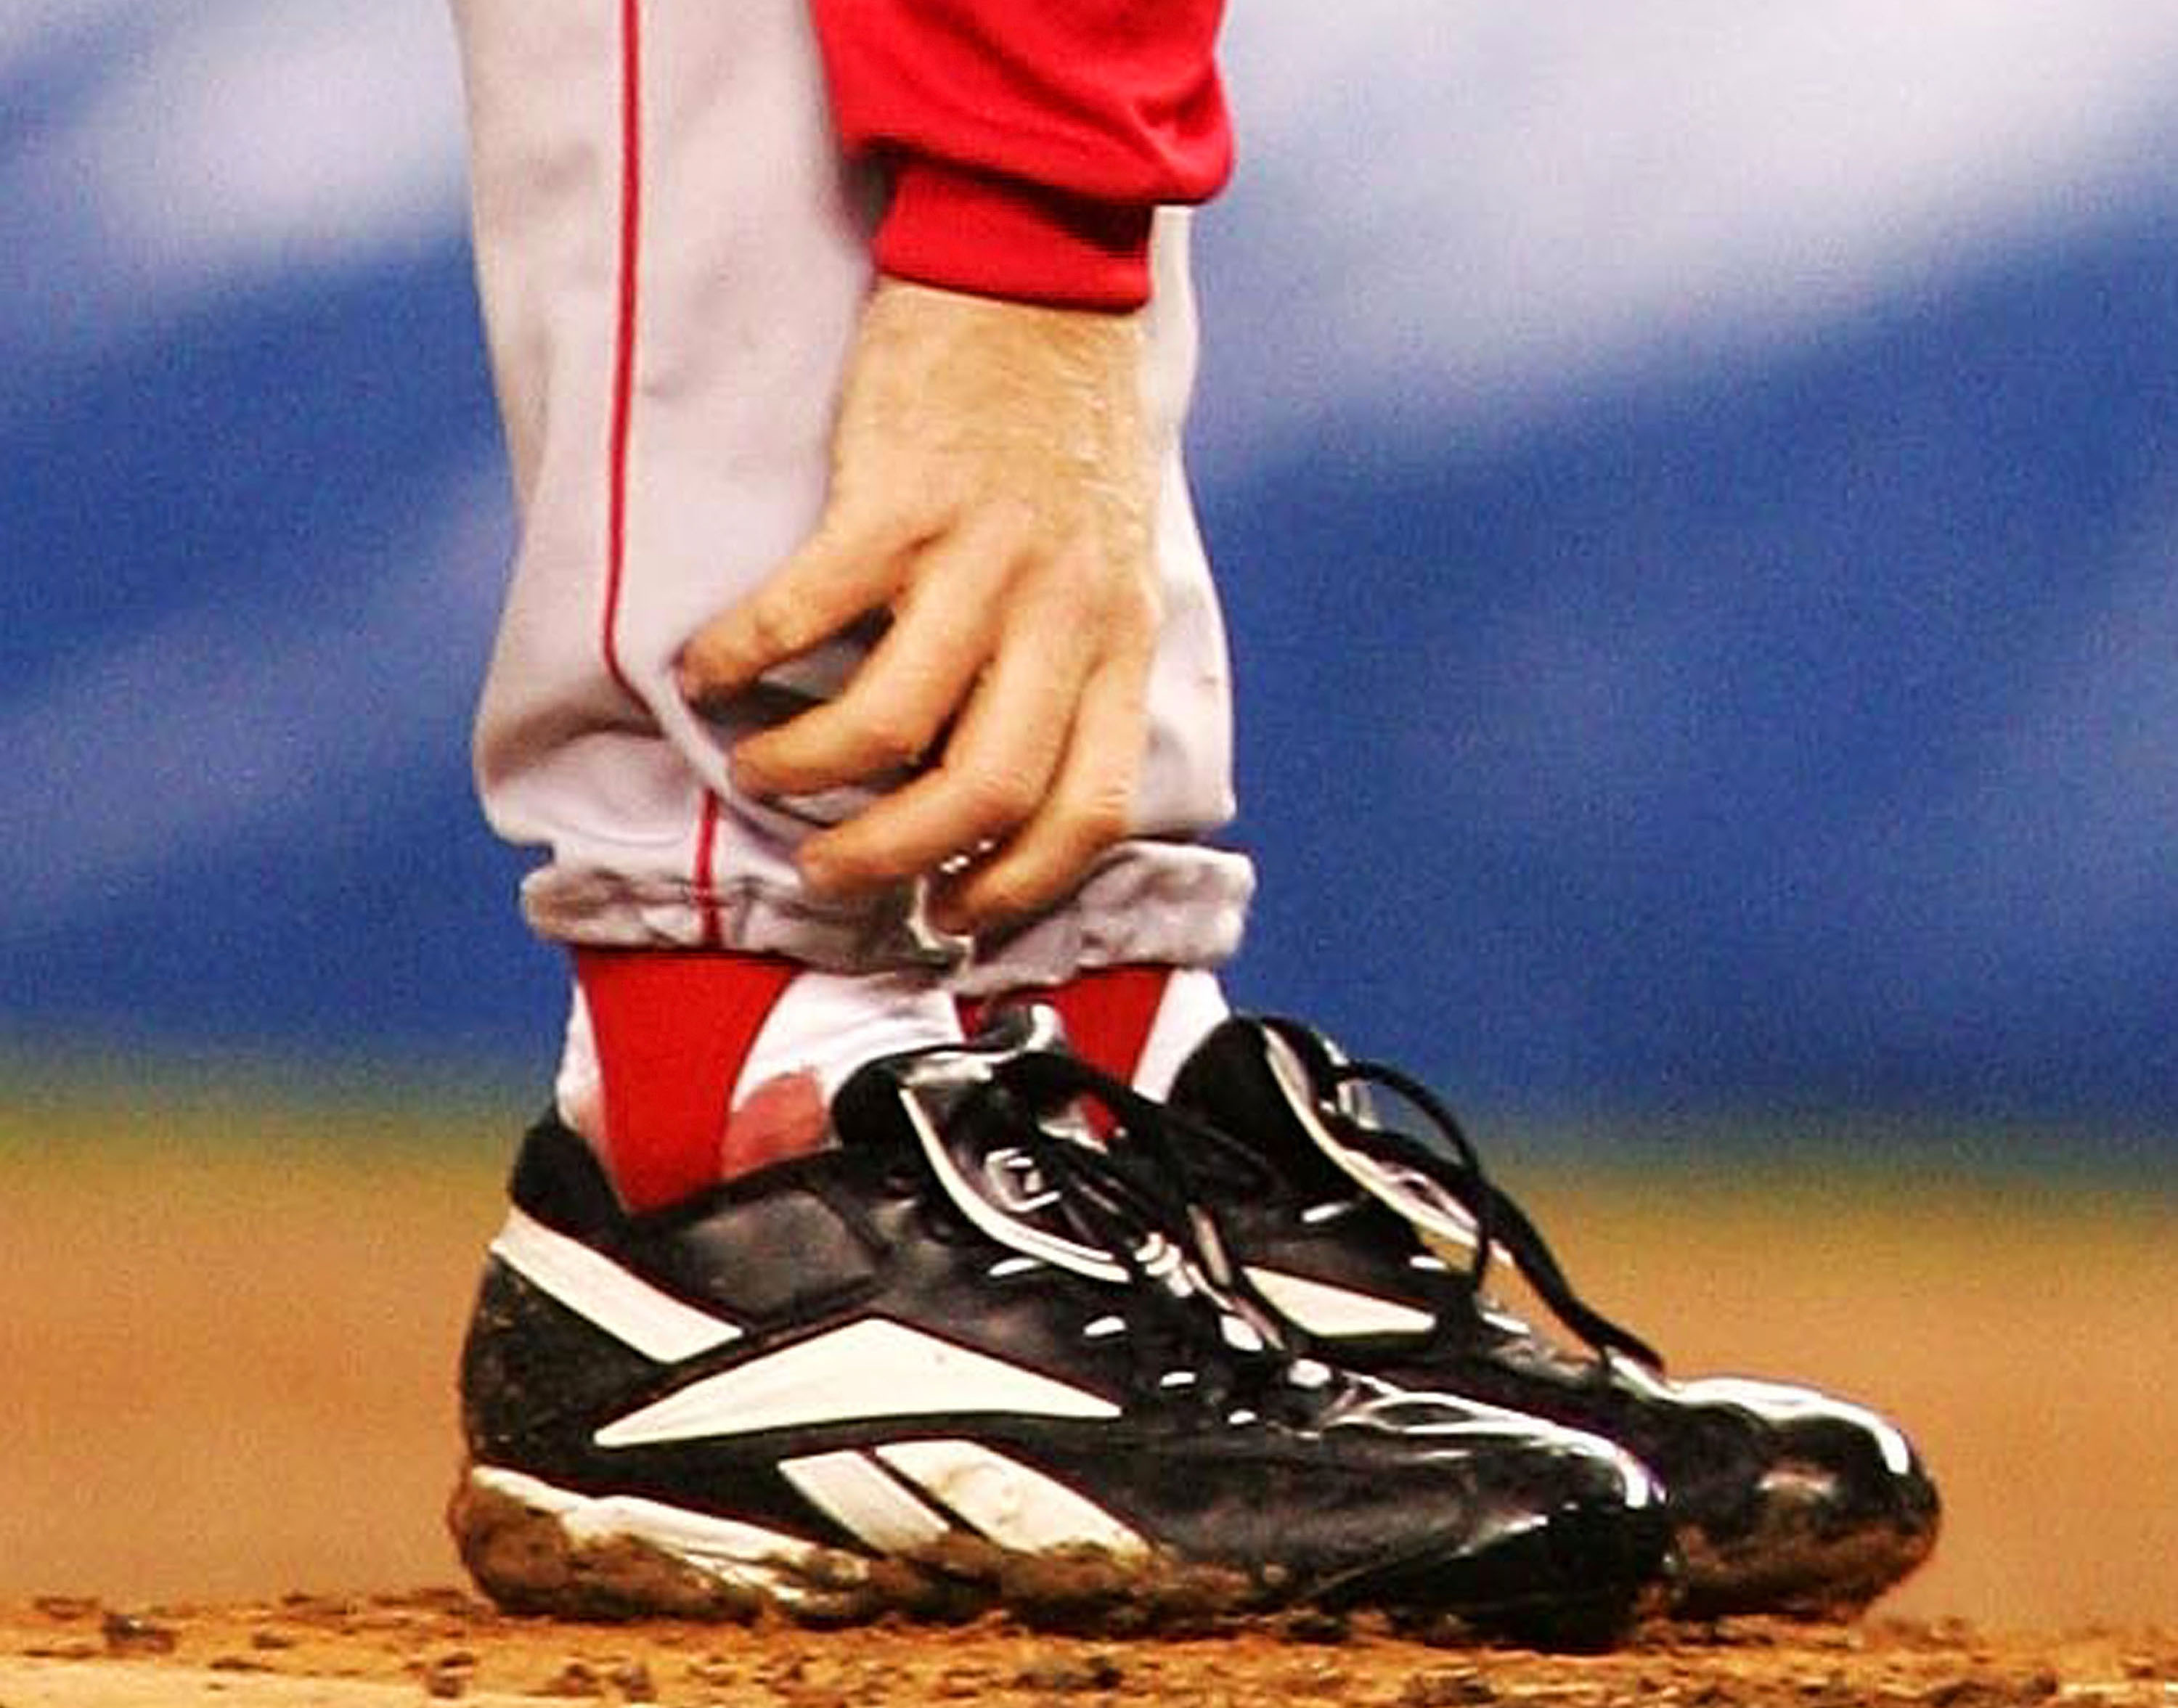 Curt Schillings bloody sock as he pitches in game six of the ALCS after a procedure that repaired a tendon sheath tear